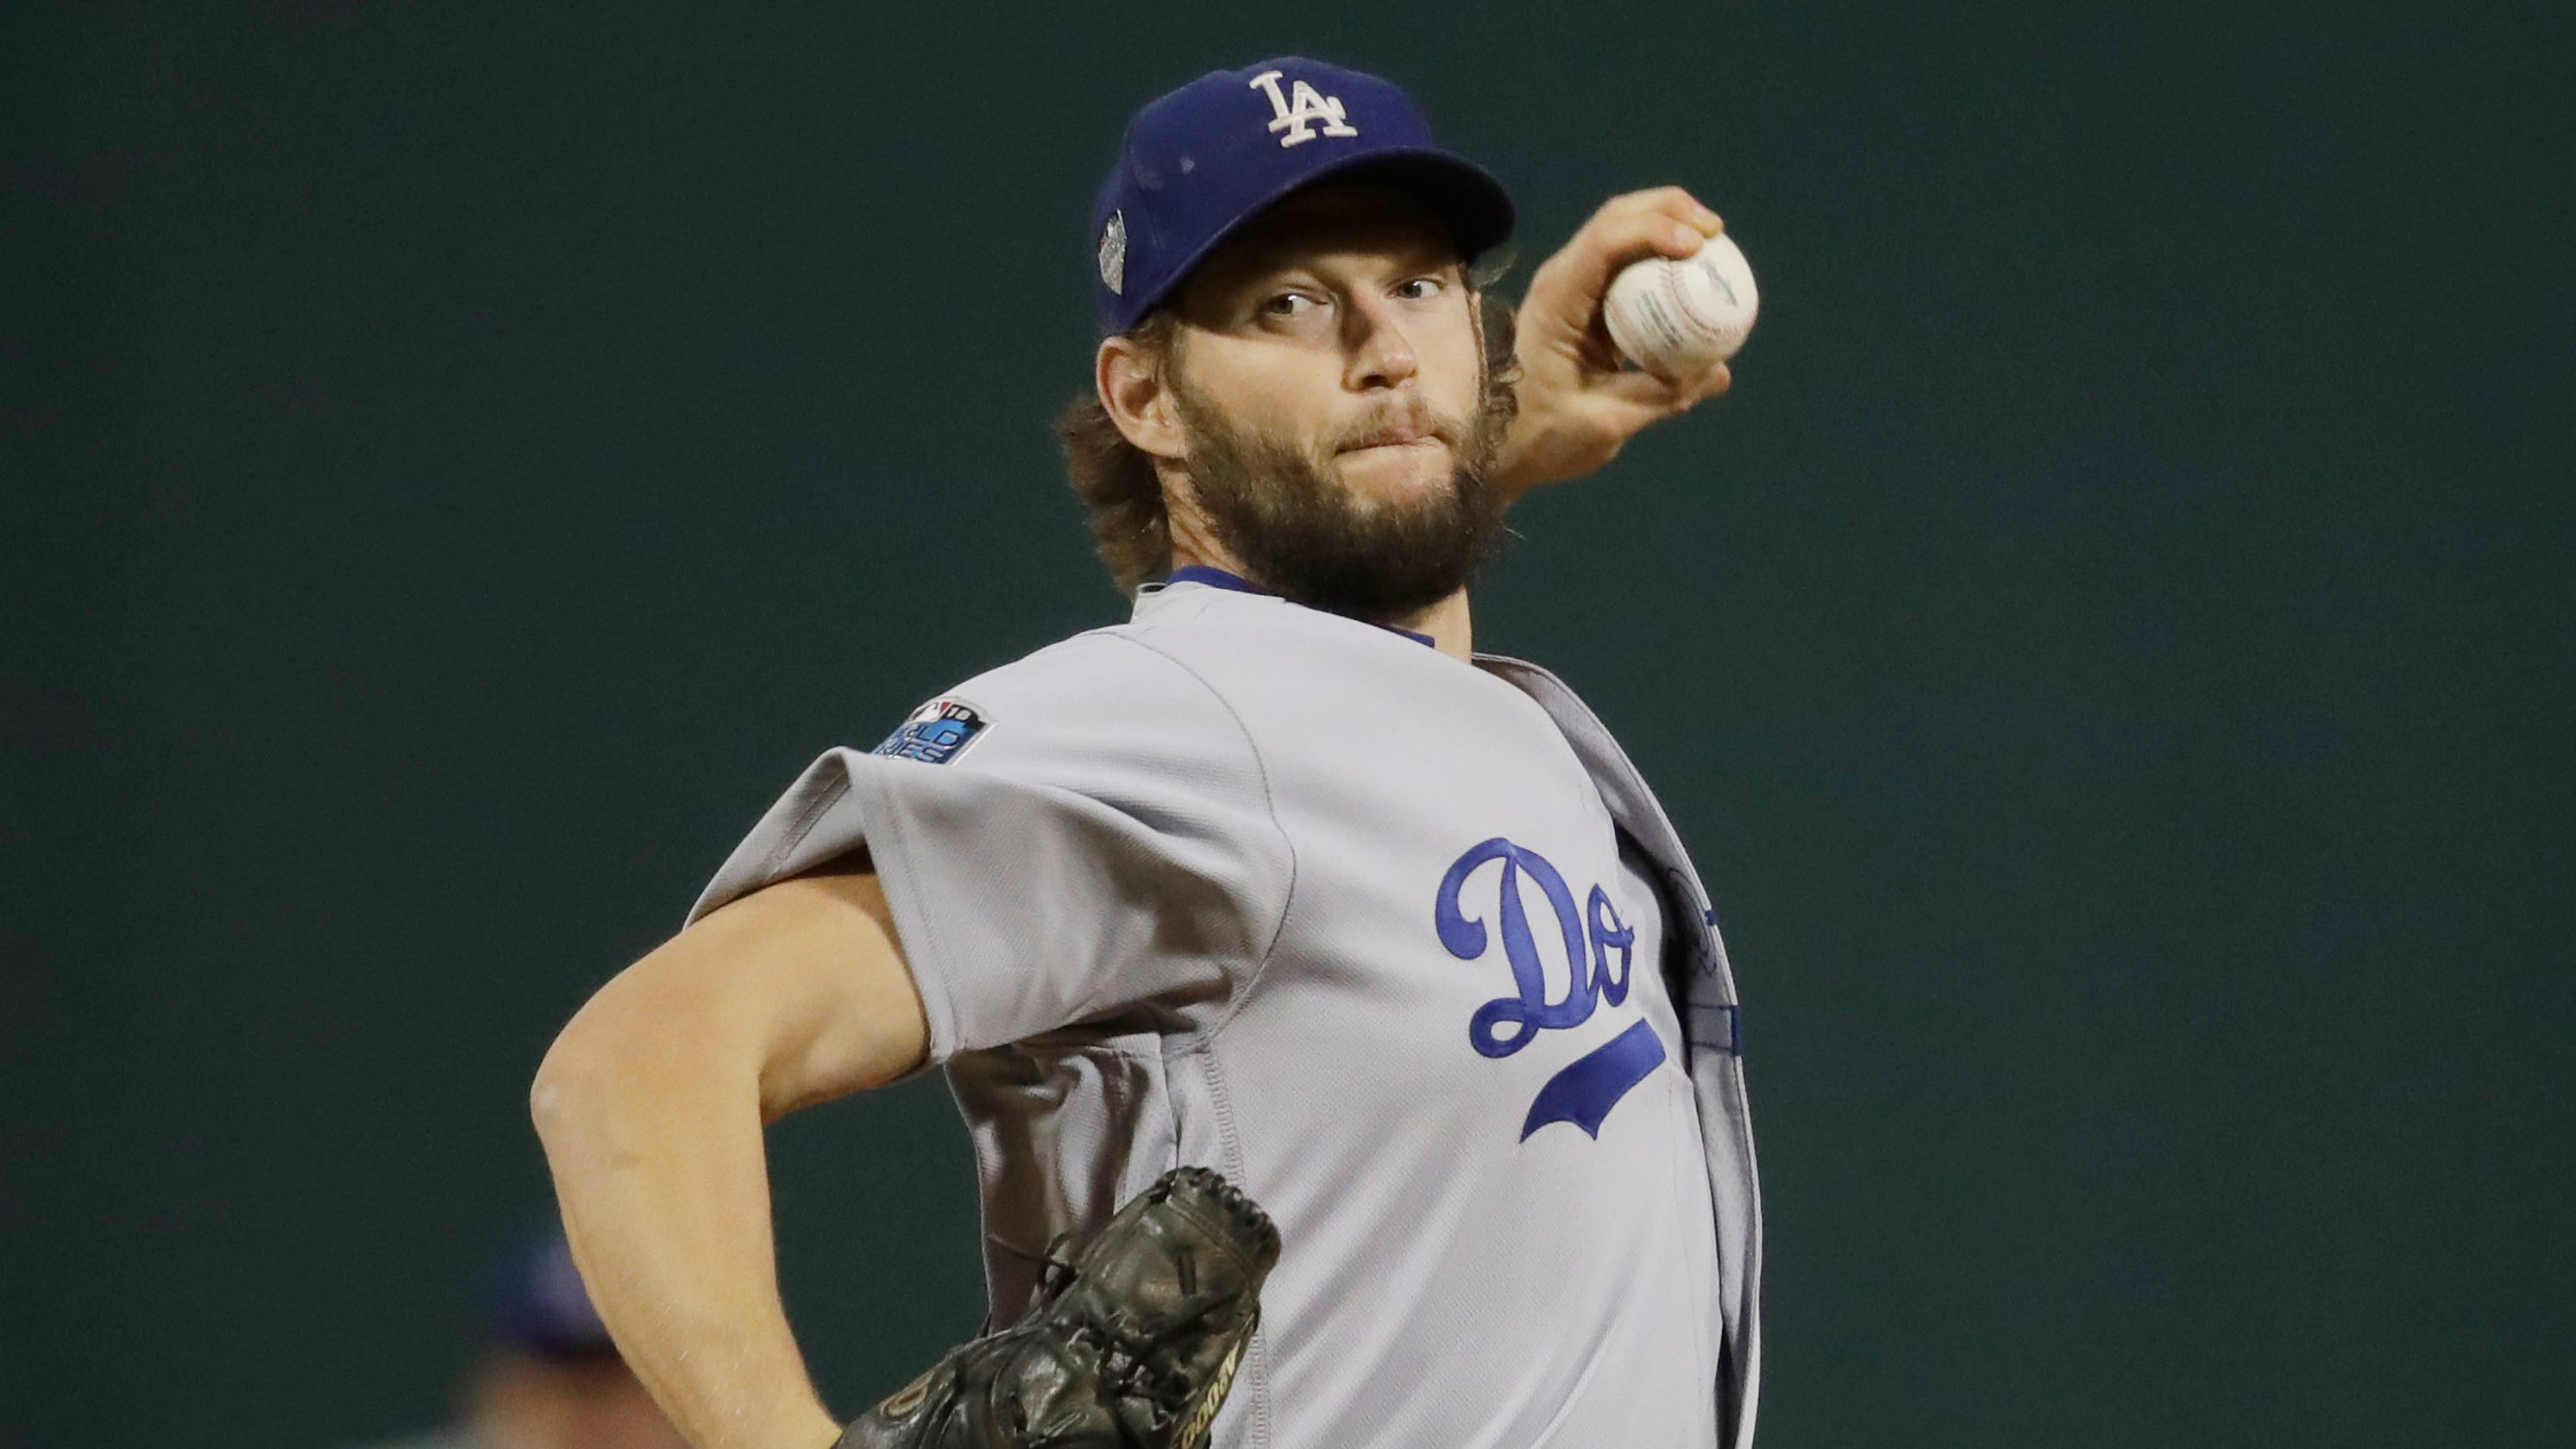 a5d29765d Clayton Kershaw before World Series Game 5 start   I don t really care  about legacy